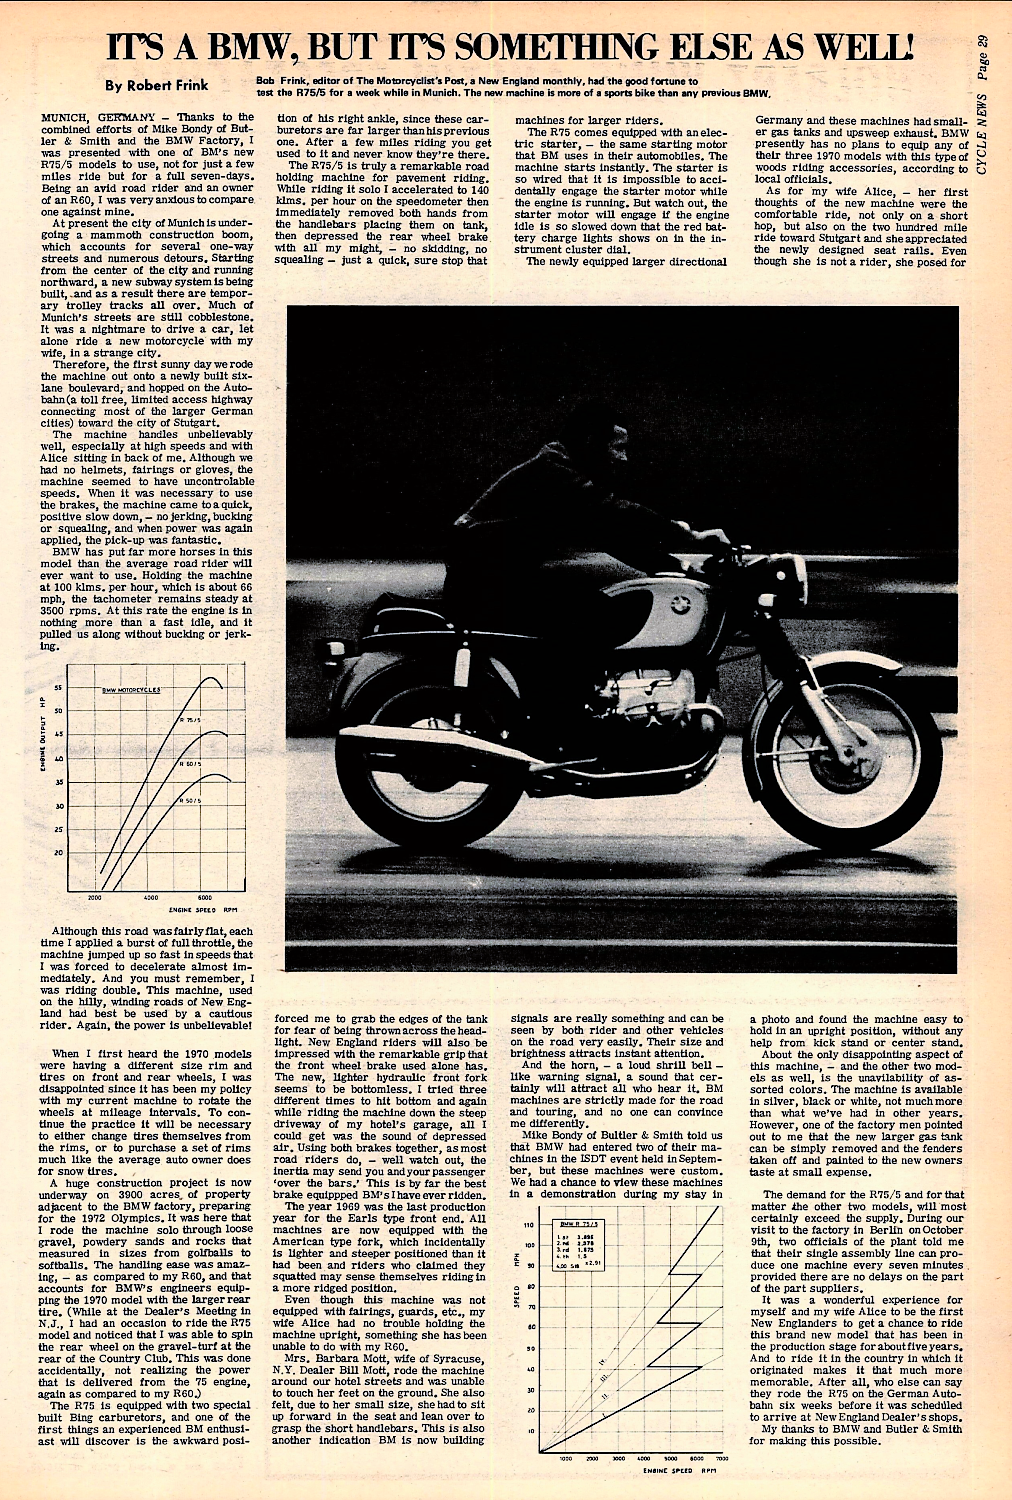 1969 BMW R75 5 road test. 1.jpg